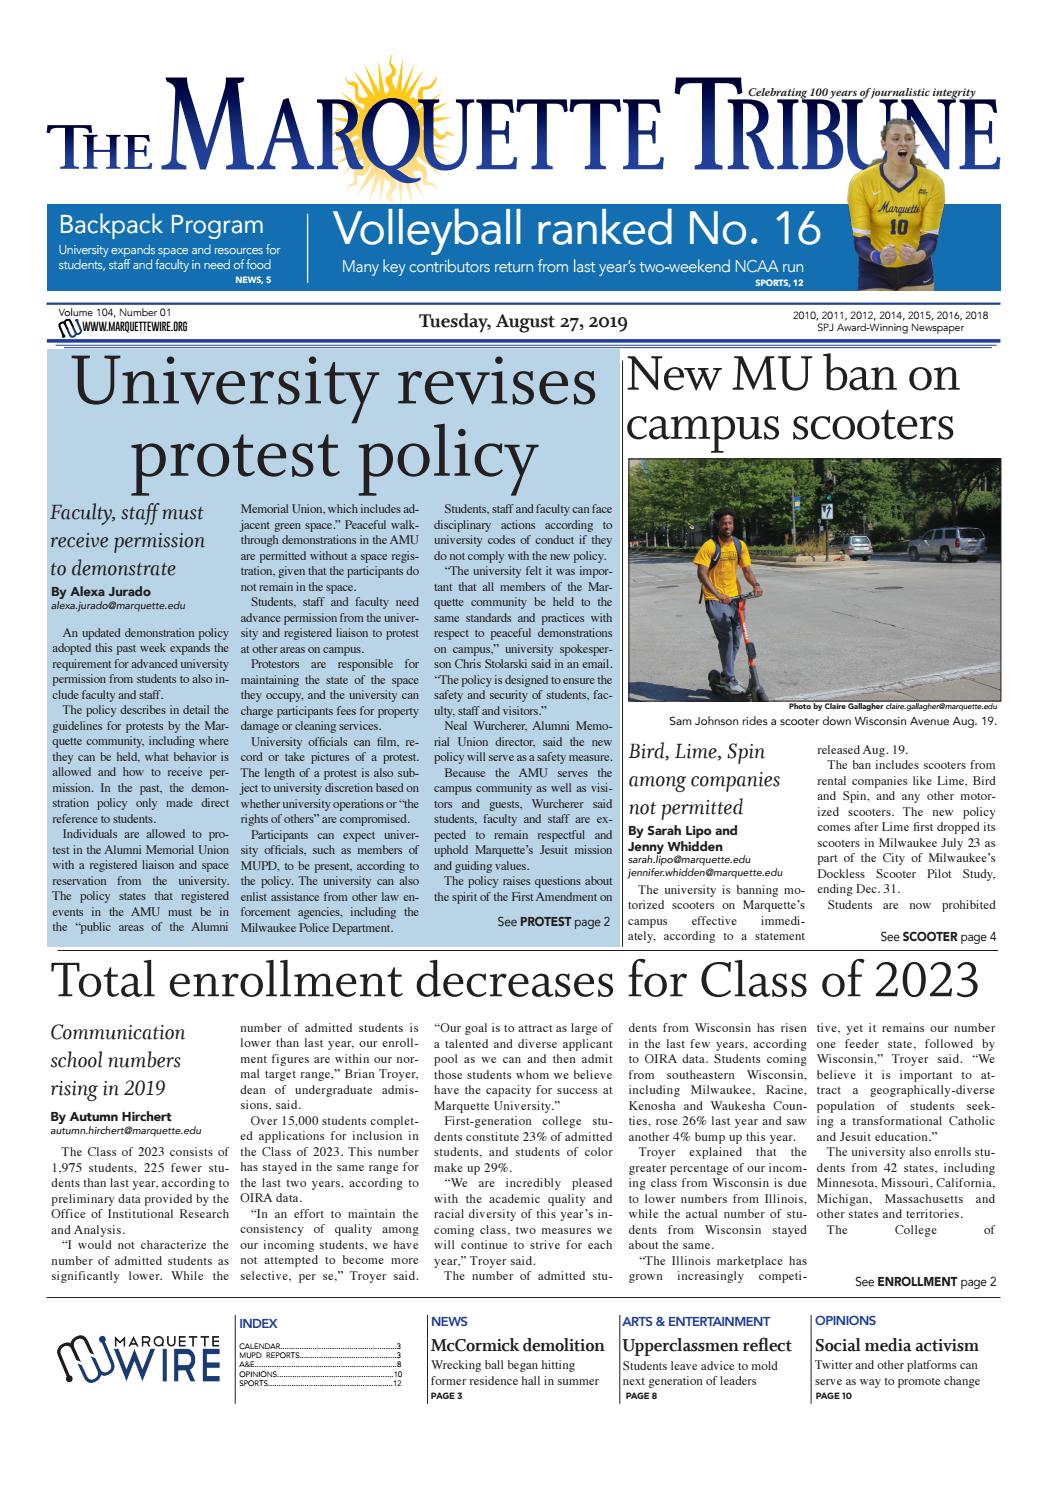 The Marquette Tribune | Tuesday, August 27, 2019 By intended for Payroll Calendar Marquette